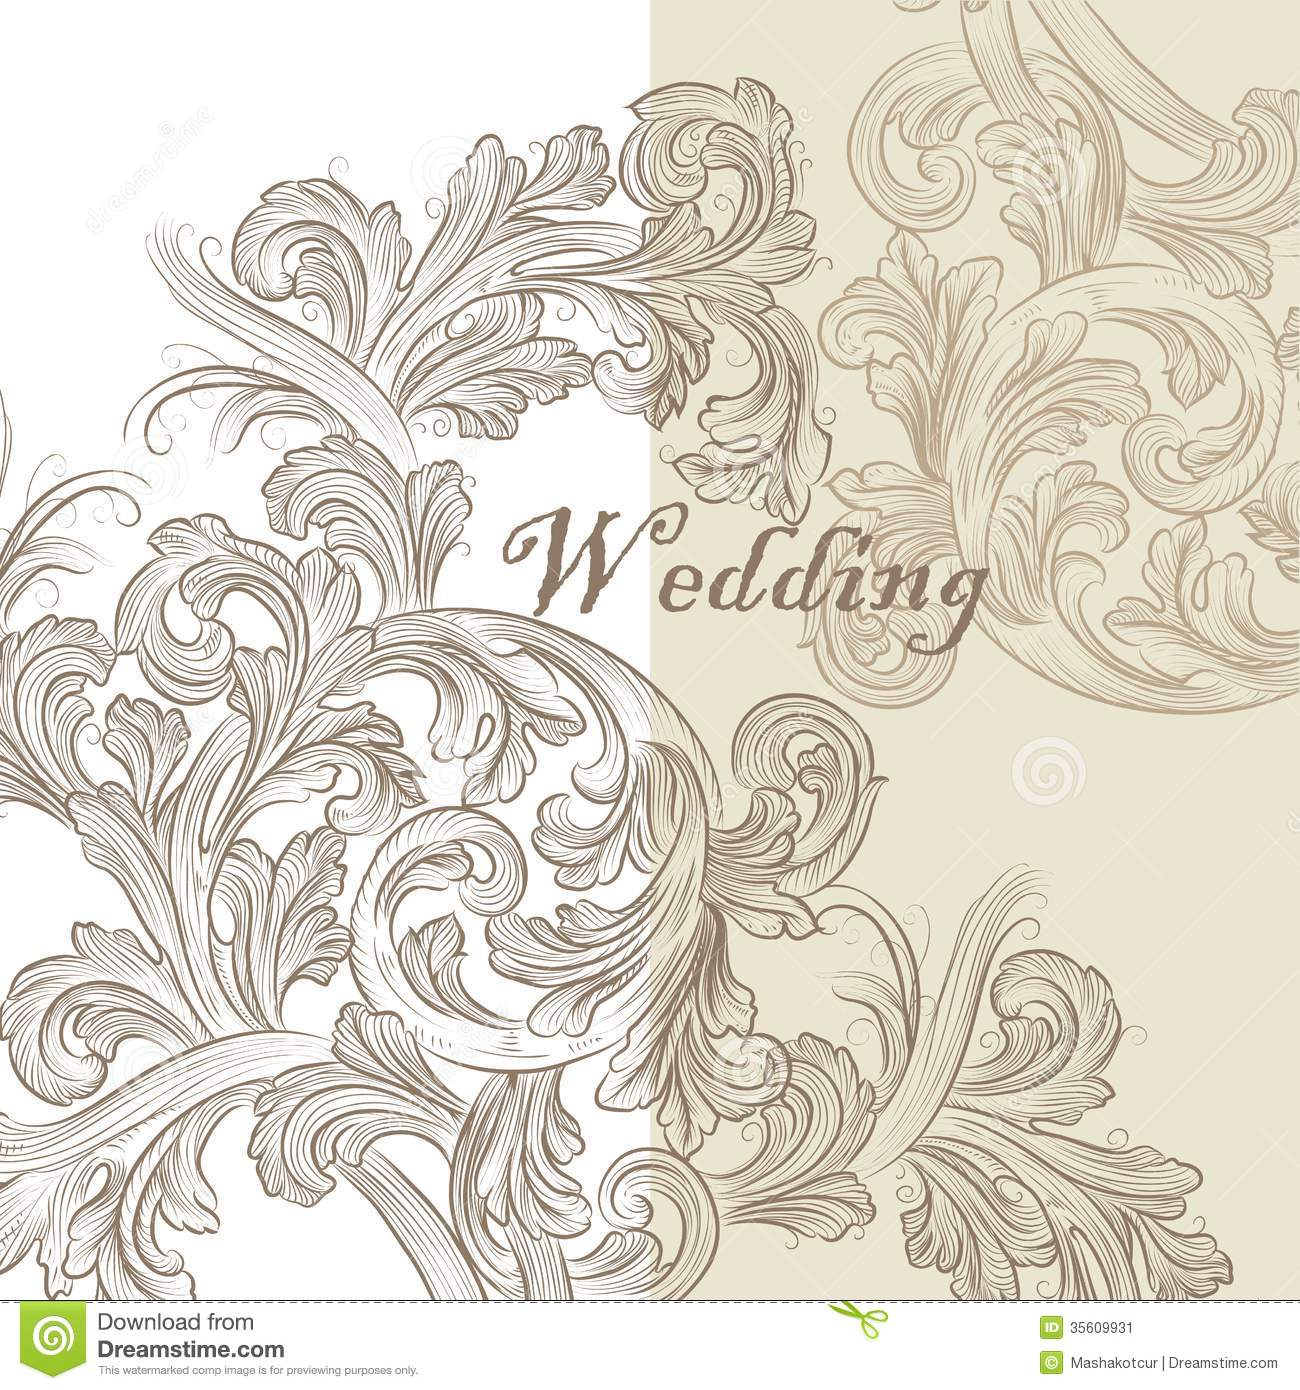 Wedding Card Line Art Designs : Beautiful wedding invitation card for design stock vector